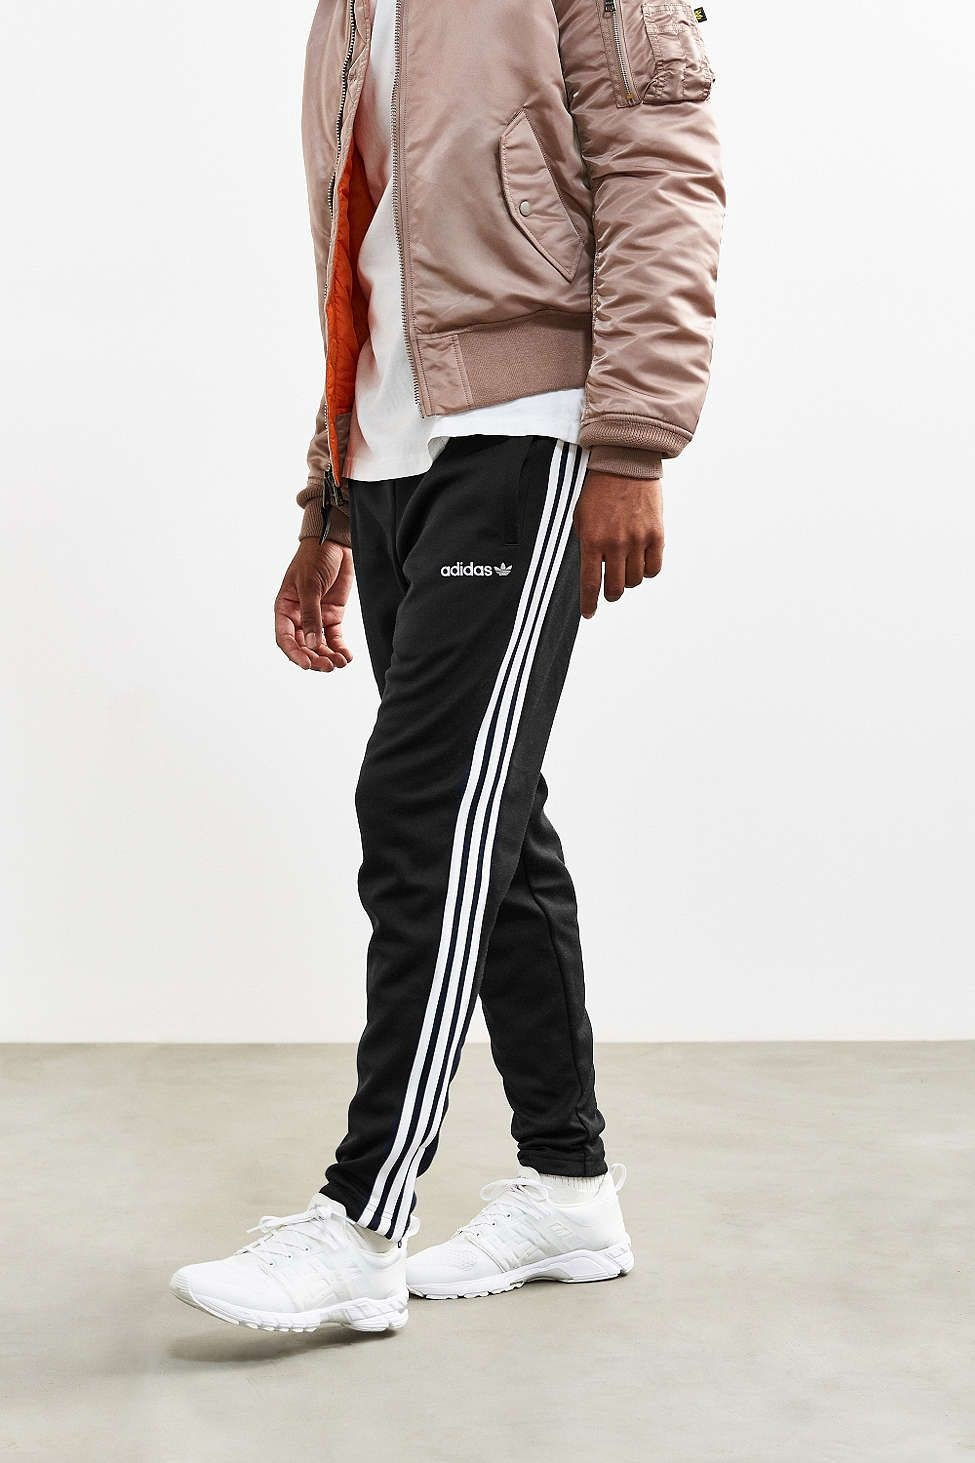 Men's Stylish Active Gear for 2019, men's track pants, men's adidas track pants